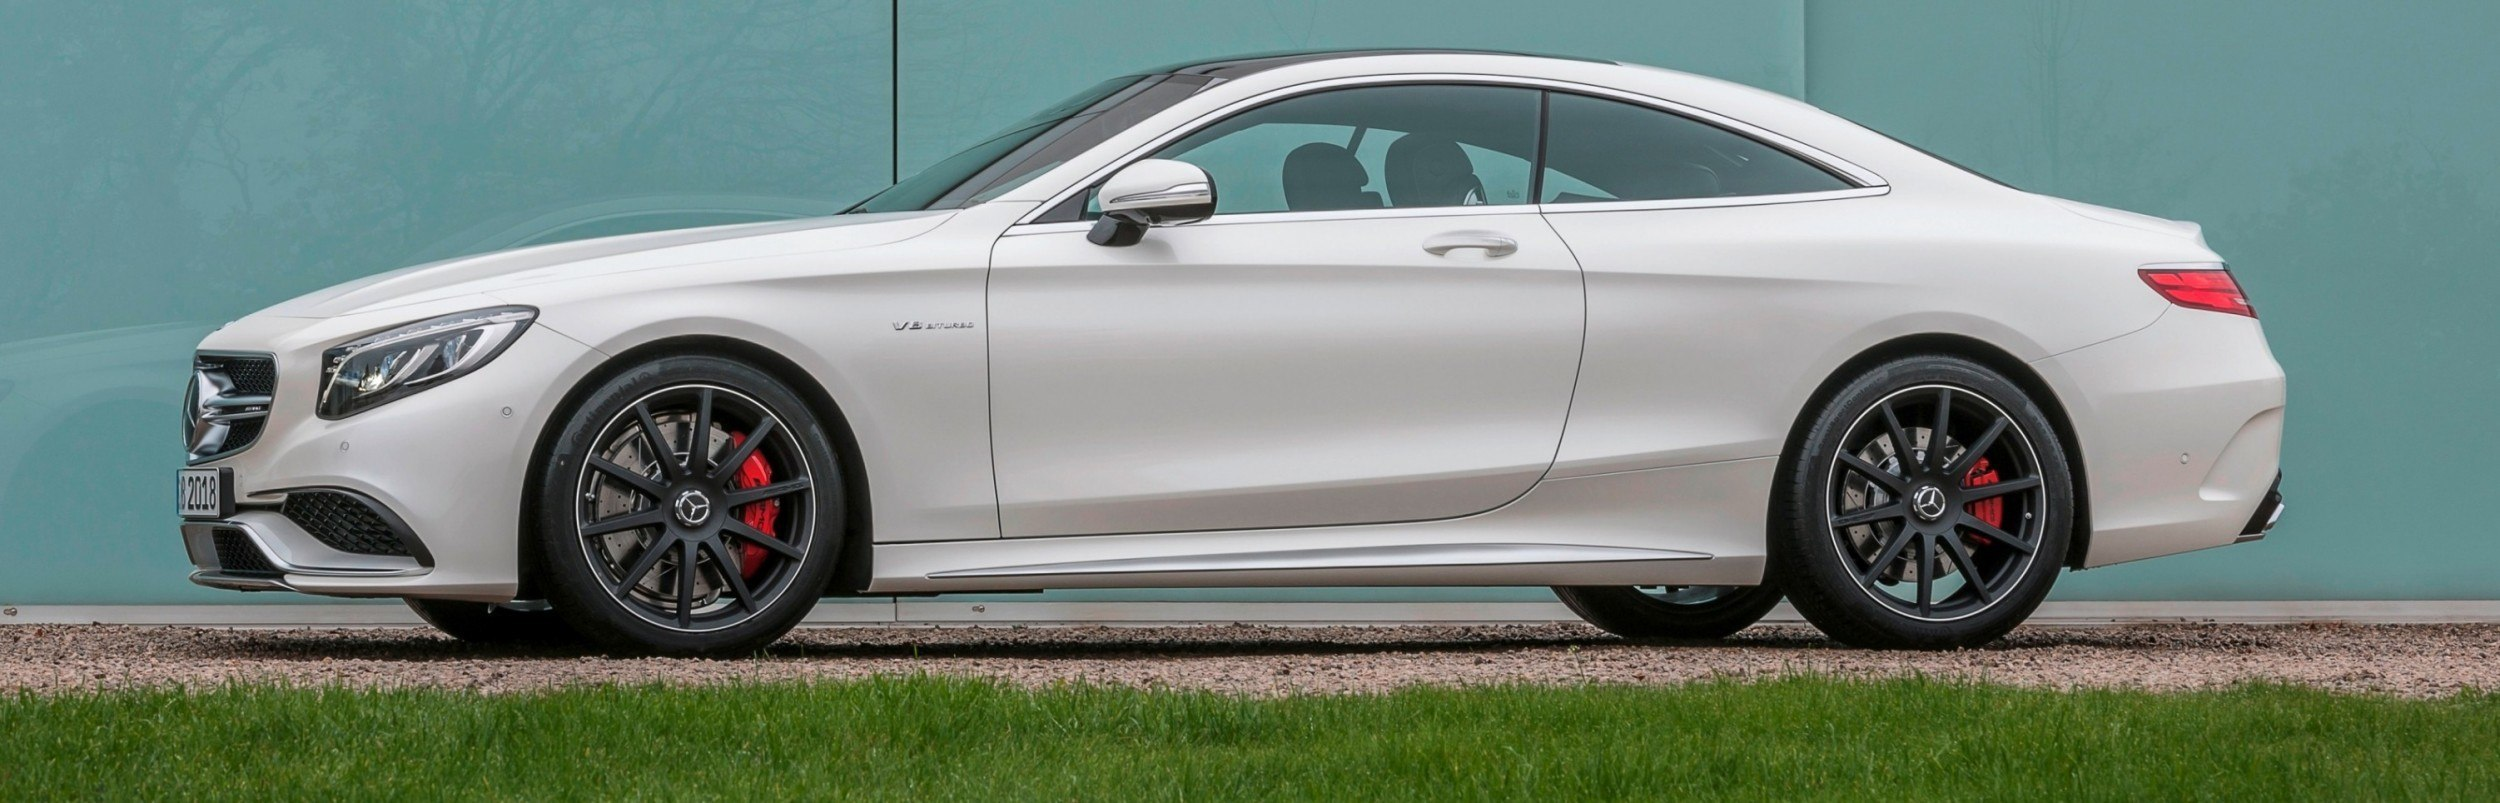 2017 S63 Amg Coupe